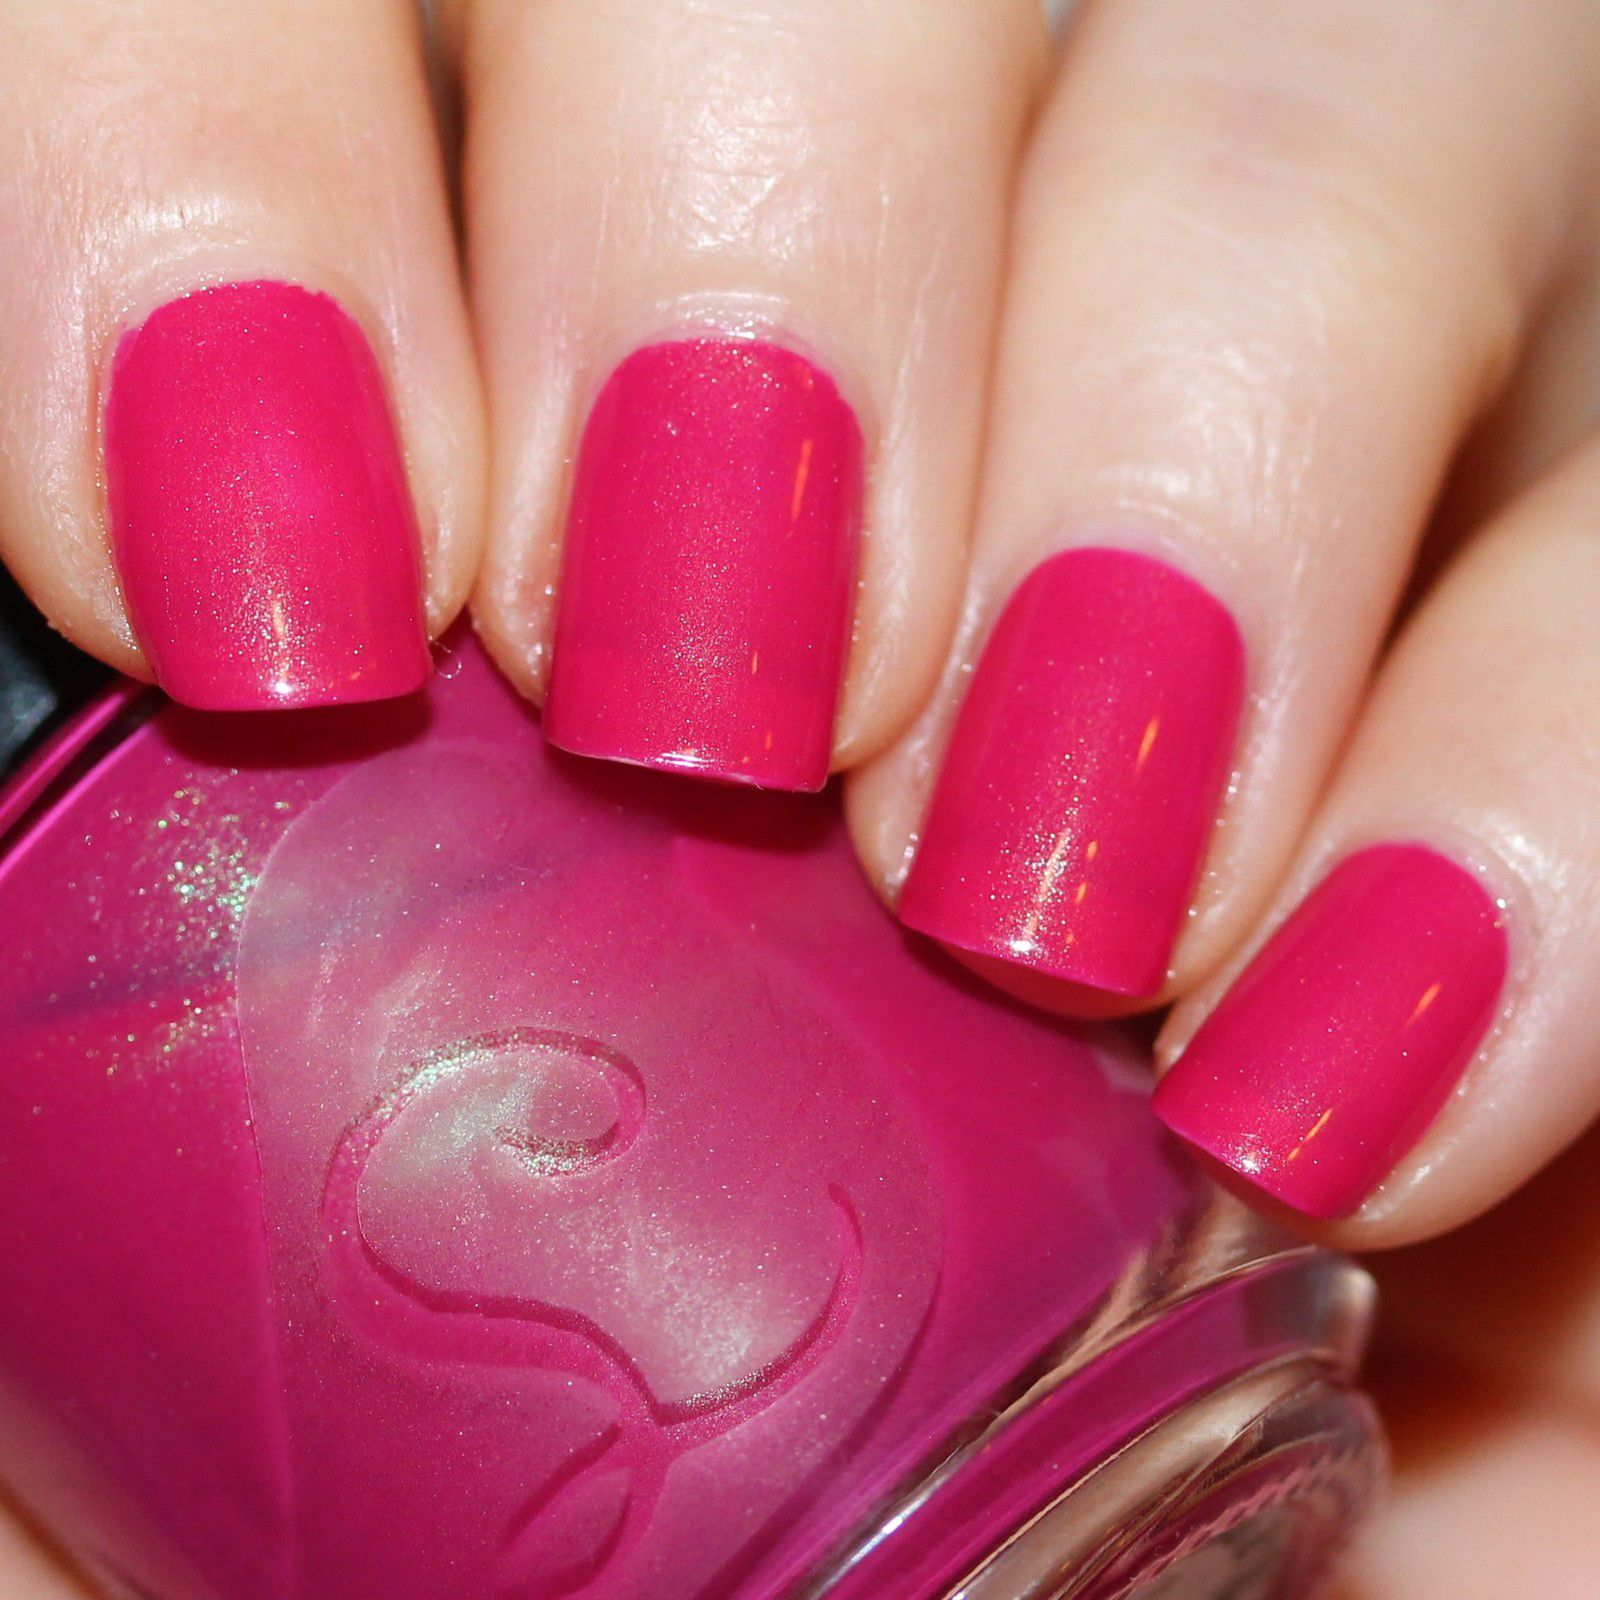 Essie Protein Base Coat / Lou It Yourself (now Bluebird Lacquer) I'm Fonda Your Flora / Poshe Top Coat